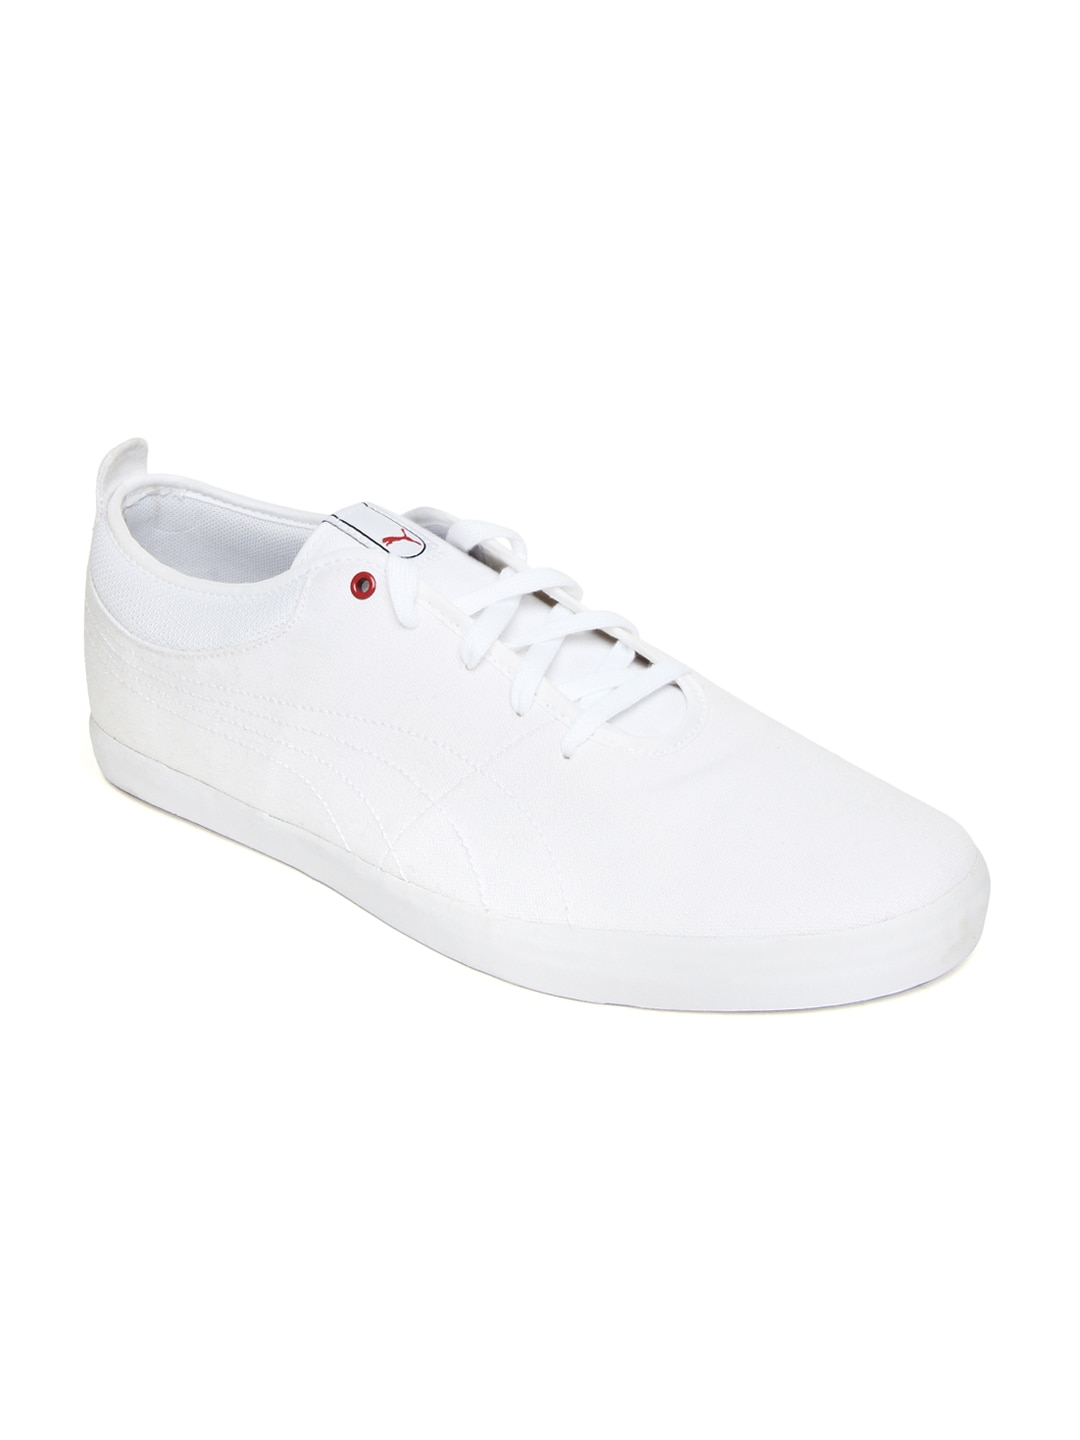 70ee27273b5 Puma 35460505 Men White Elsu Canvas Casual Shoes - Best Price in ...